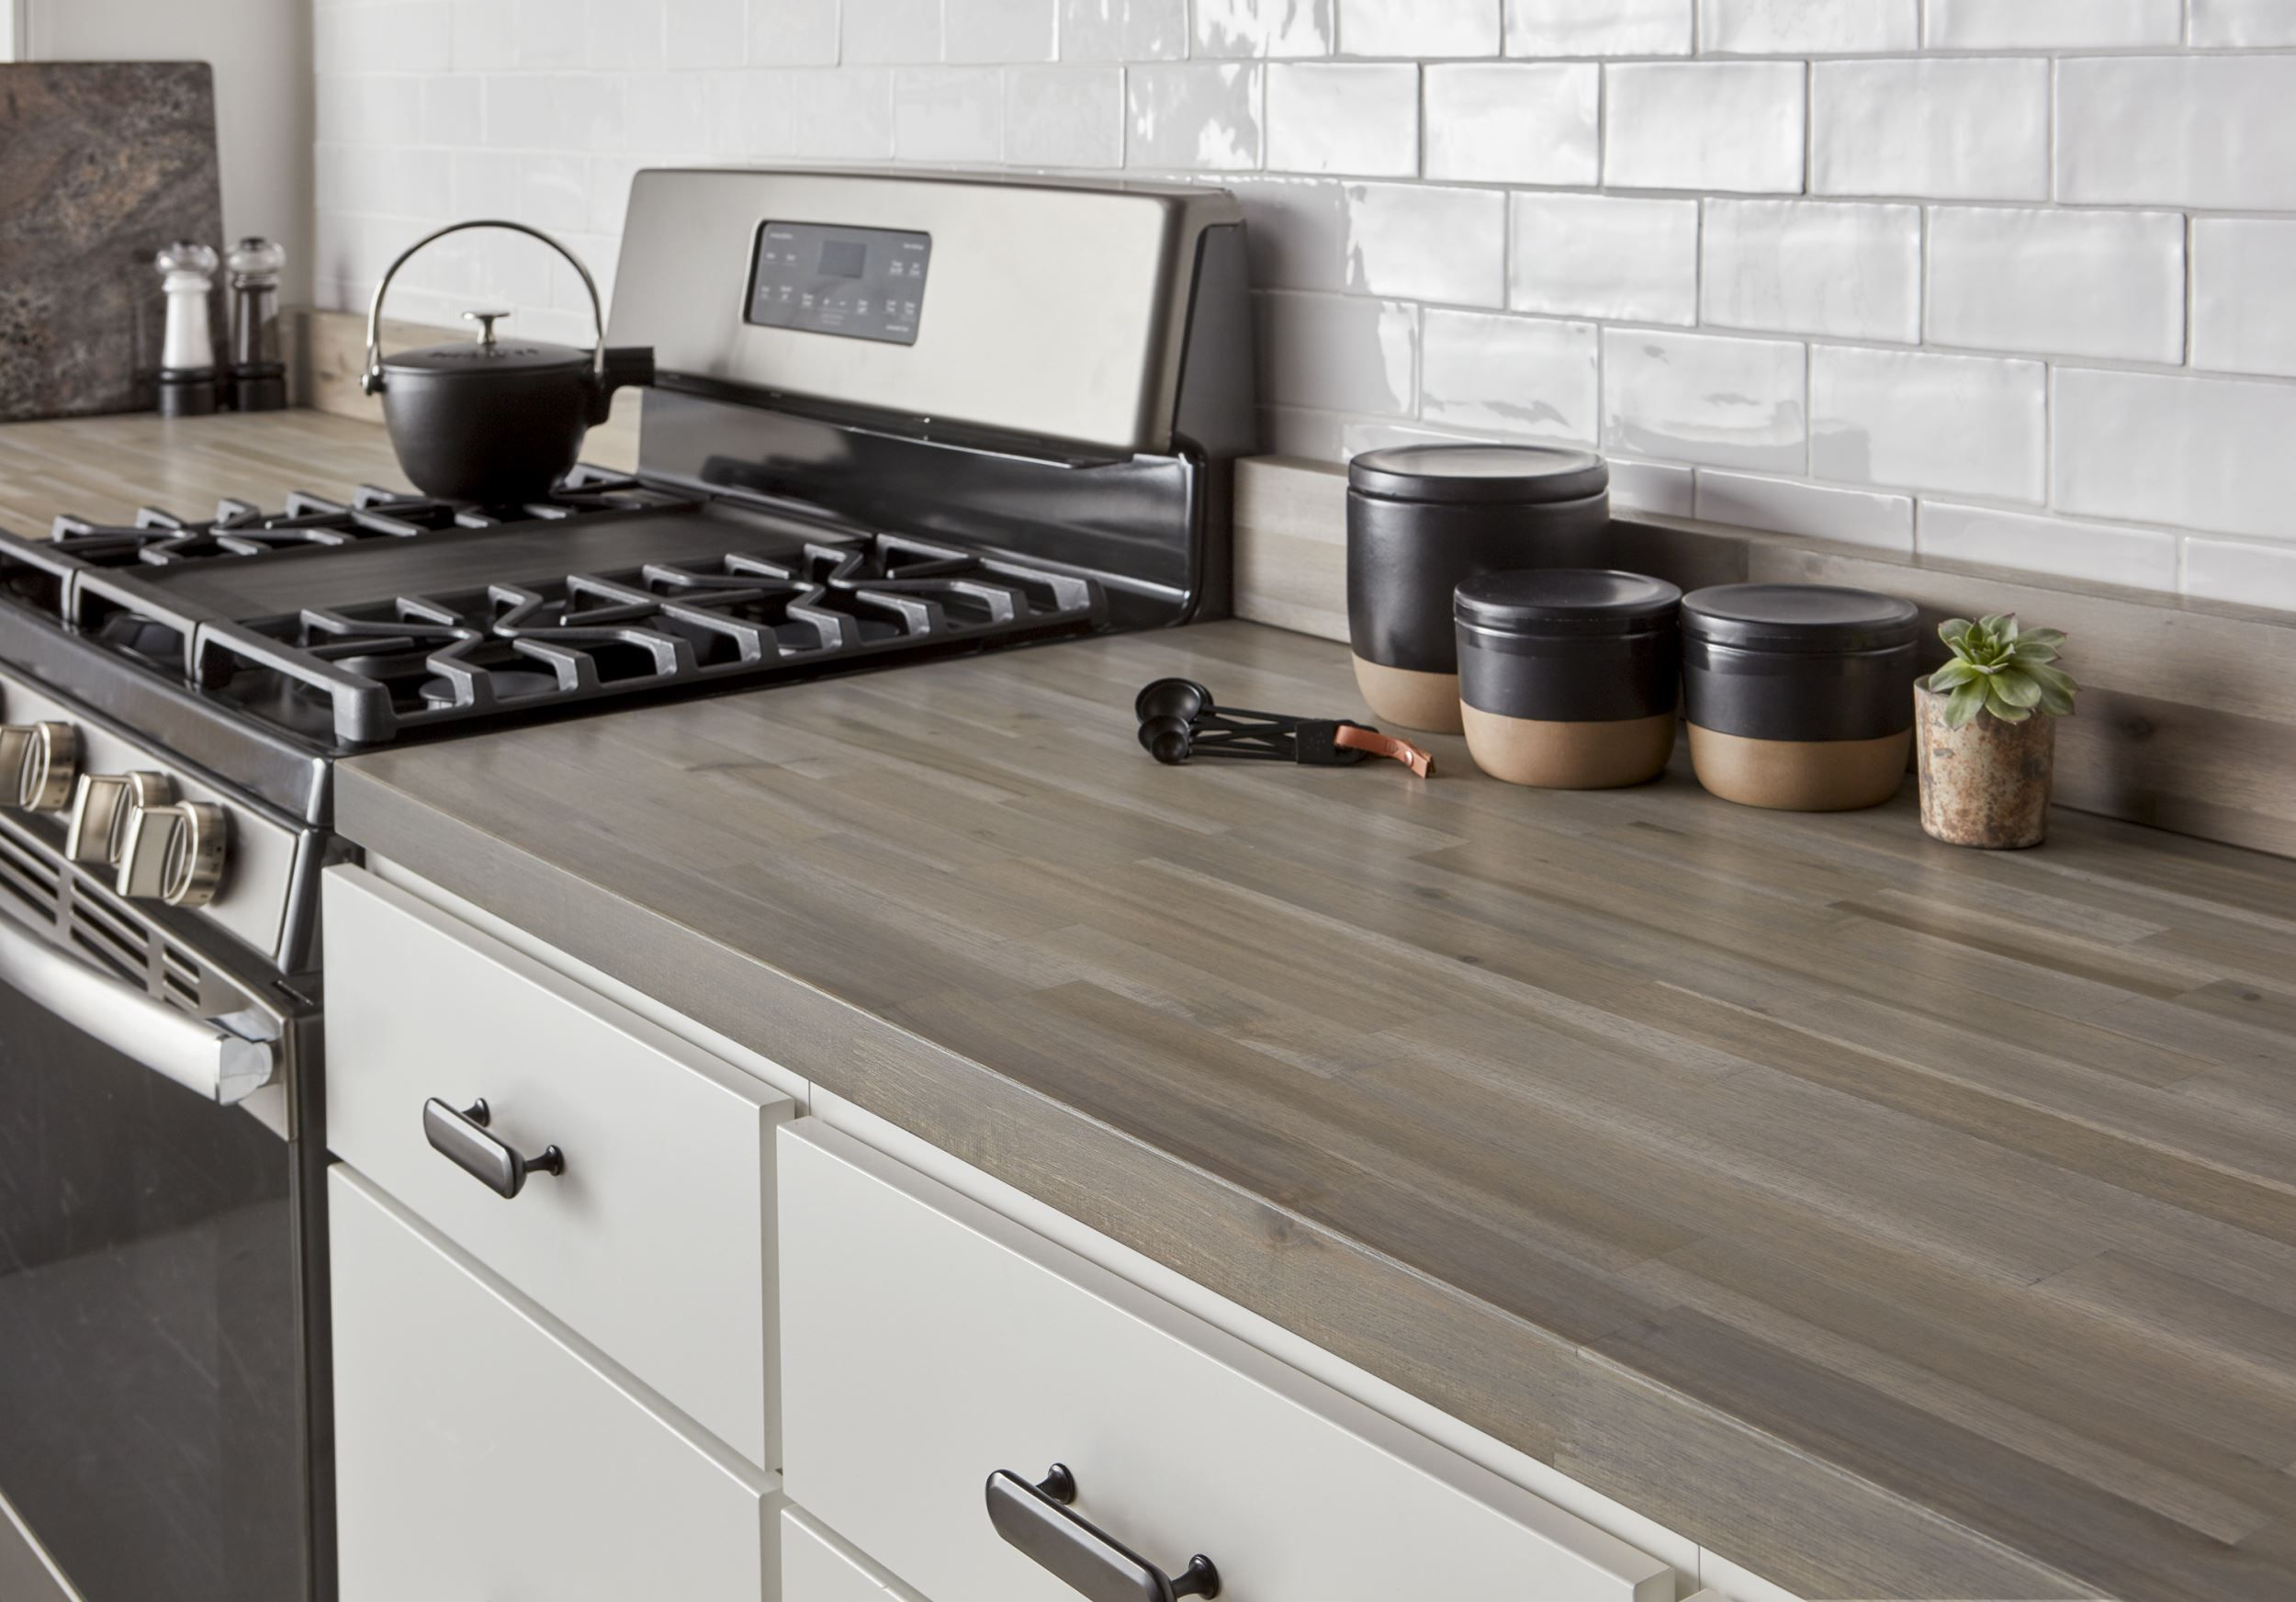 Incredible Butcher Block Countertops 1 Thing You May Start On Is